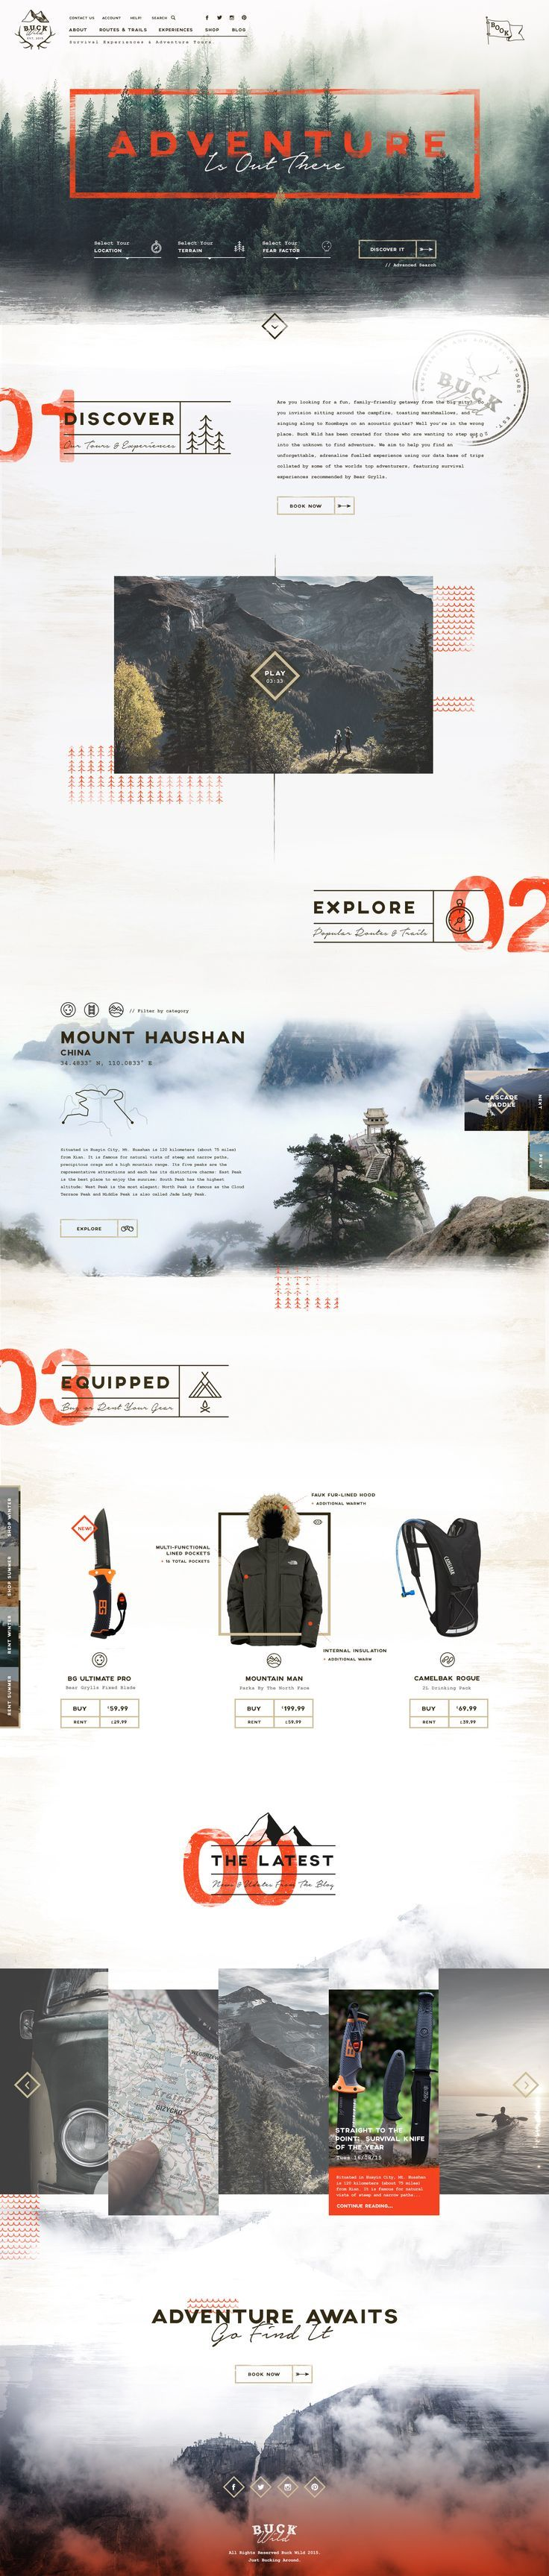 Gallery: Modern & Trendy Web Designs